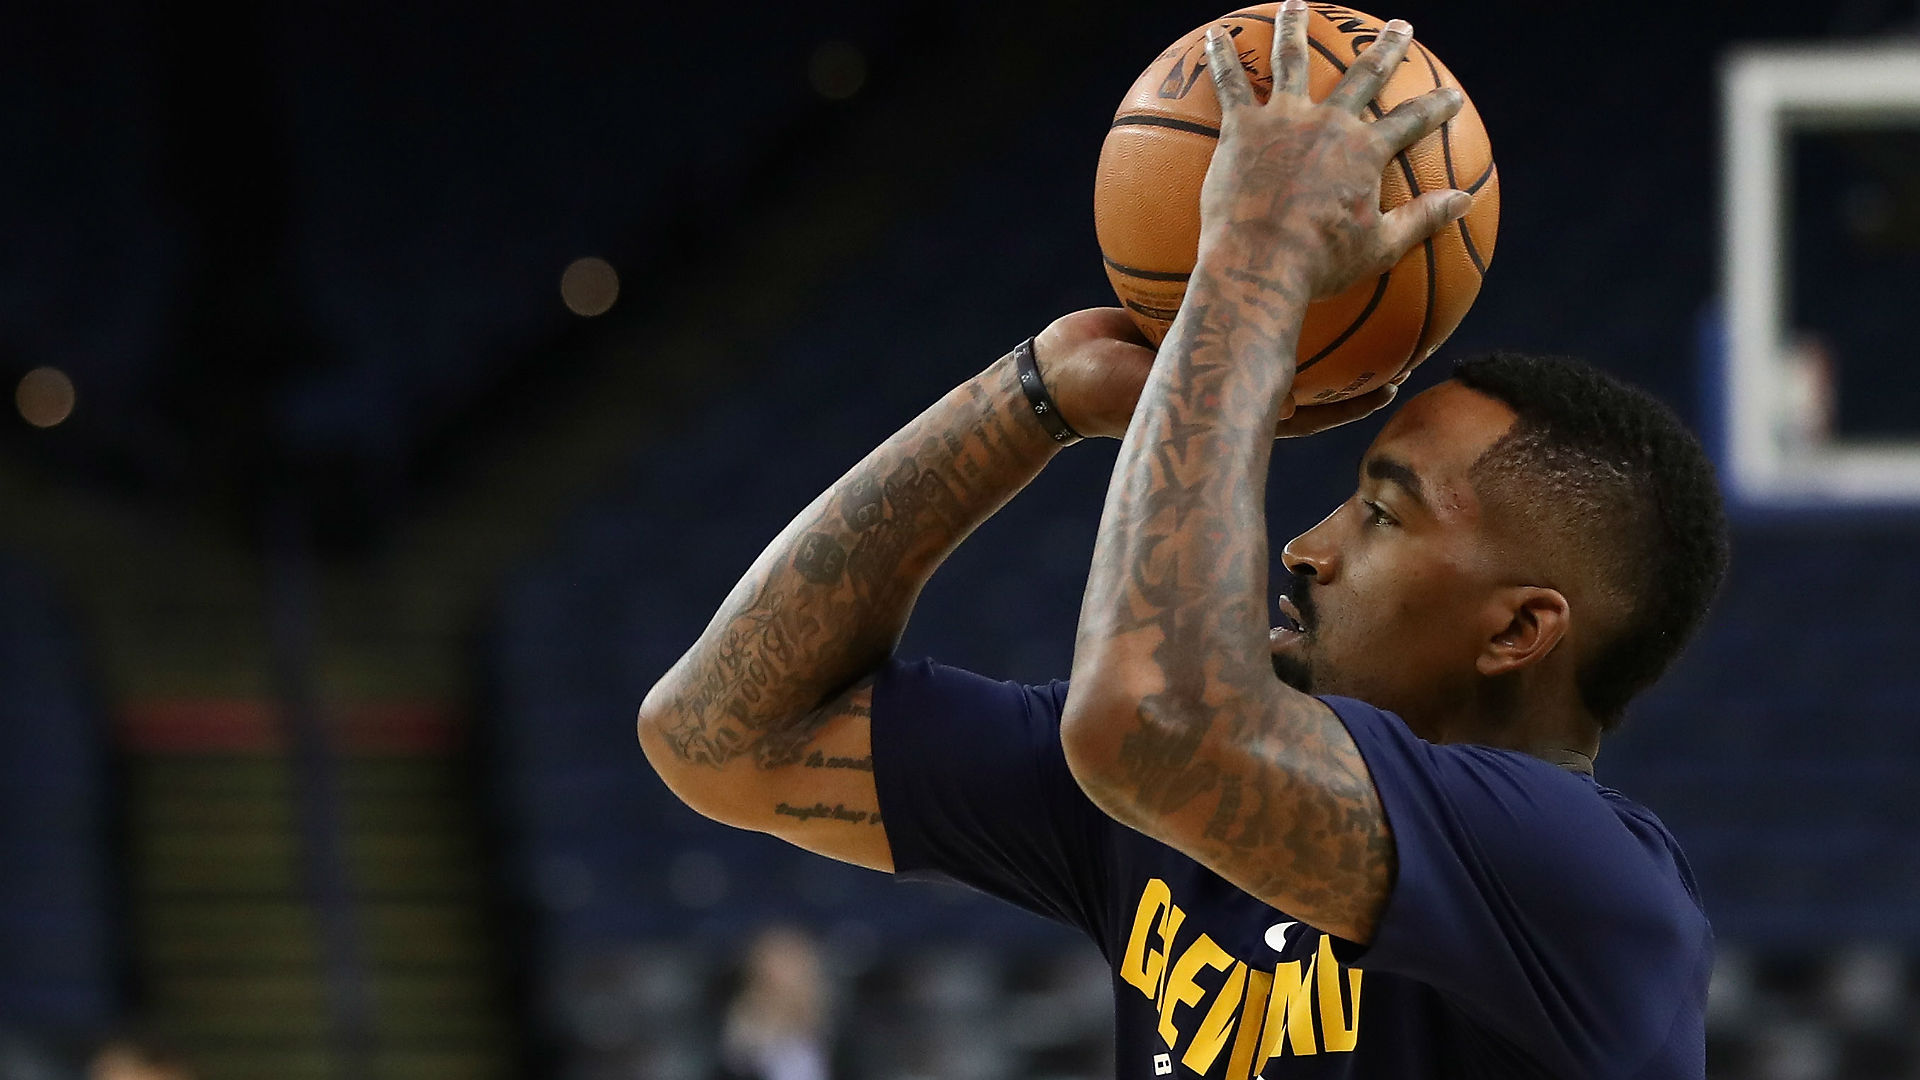 NBA trade rumors: Cavaliers 'surprised they haven't found a taker' for JR Smith